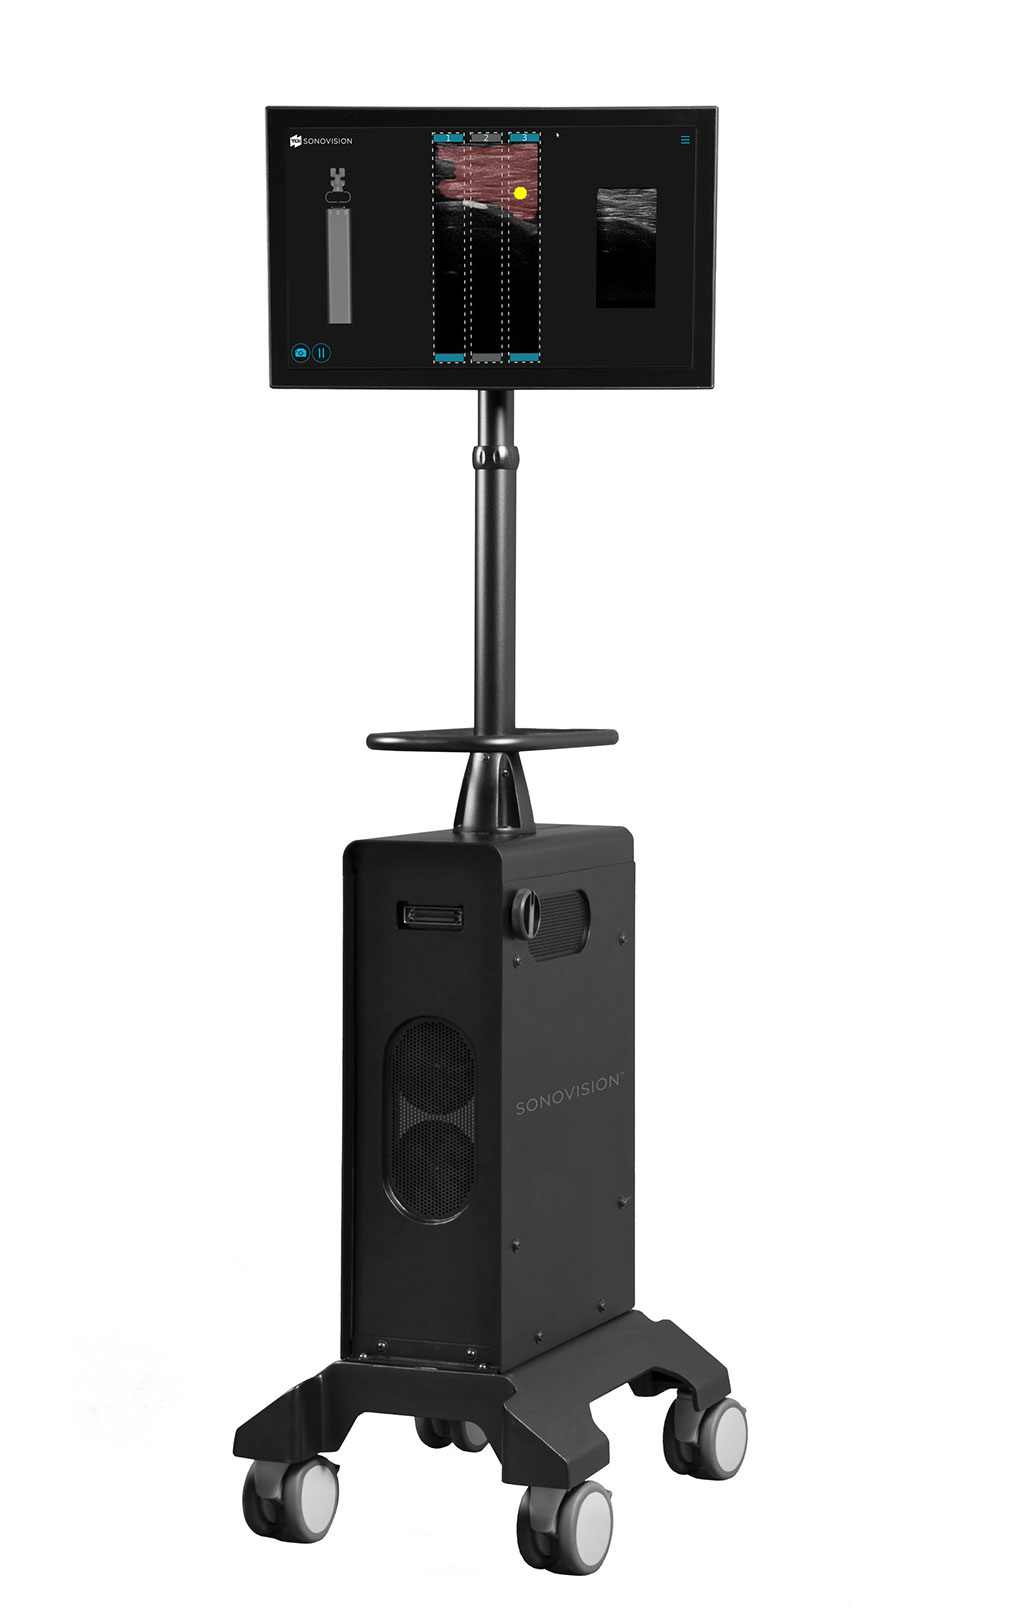 Image: The SonoVision ultrasound imaging system (Photo courtesy of TDi).